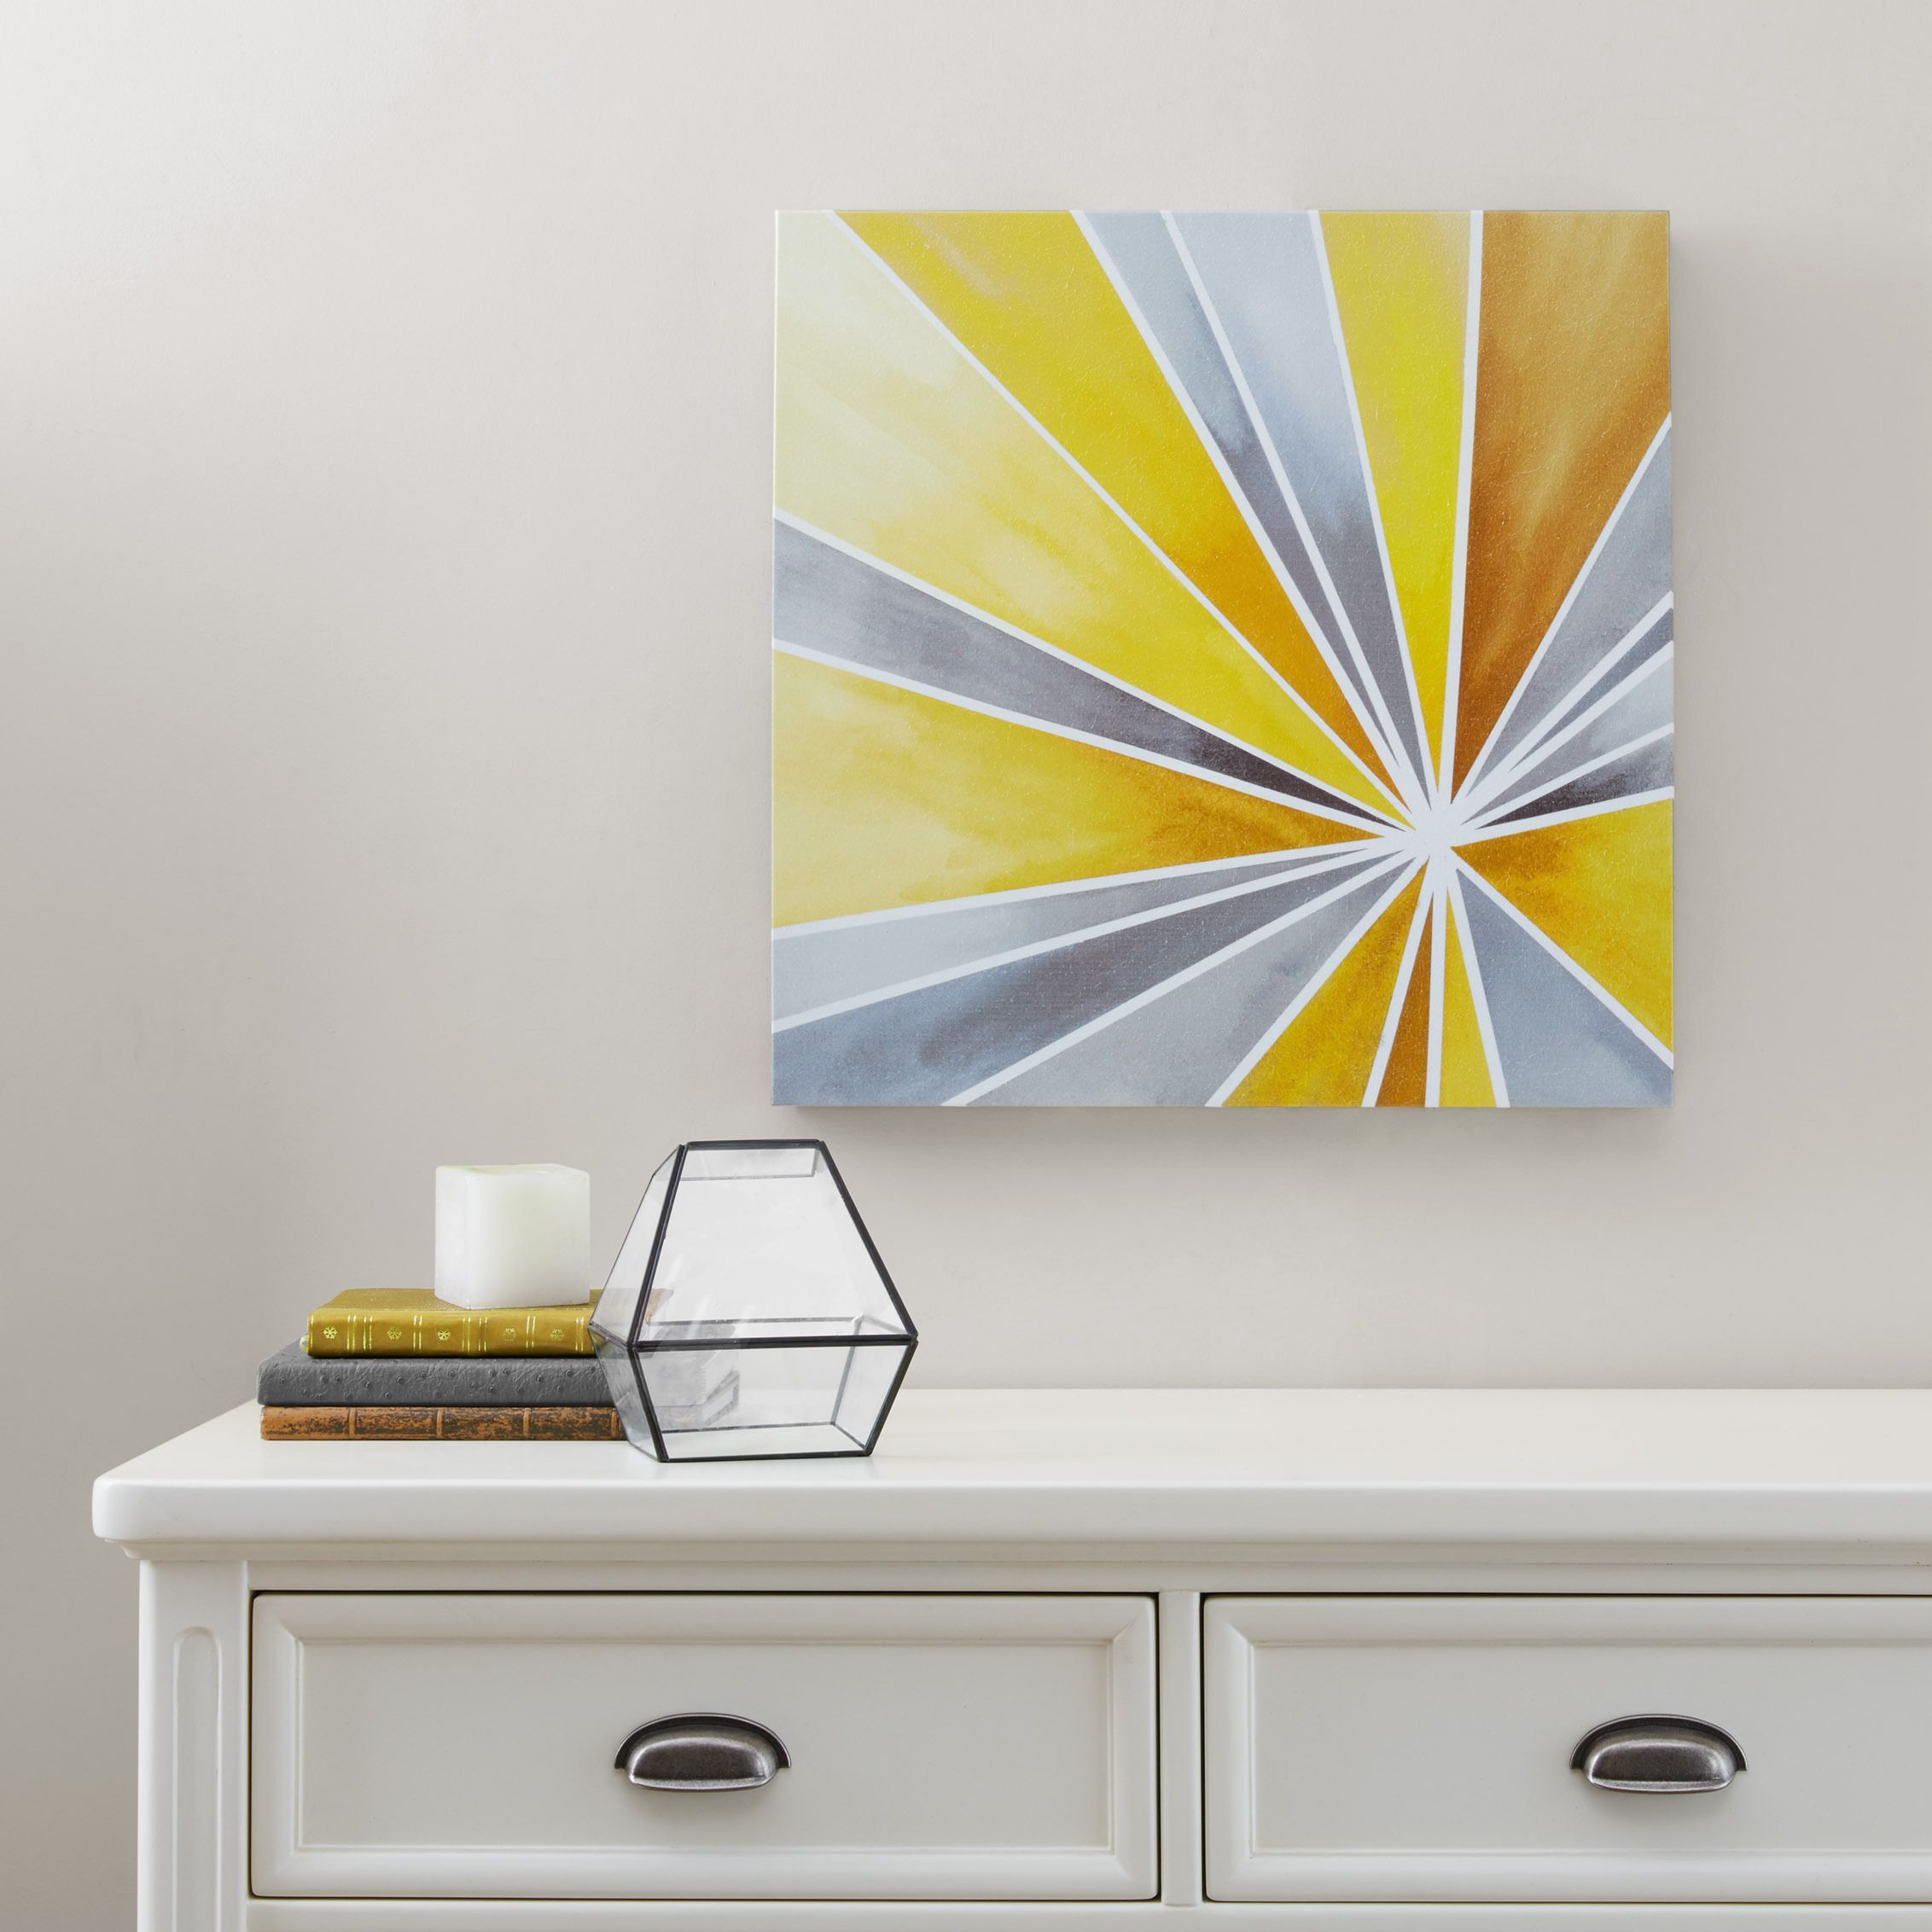 Bring a ray of sunshine with this fun and vibrant abstract